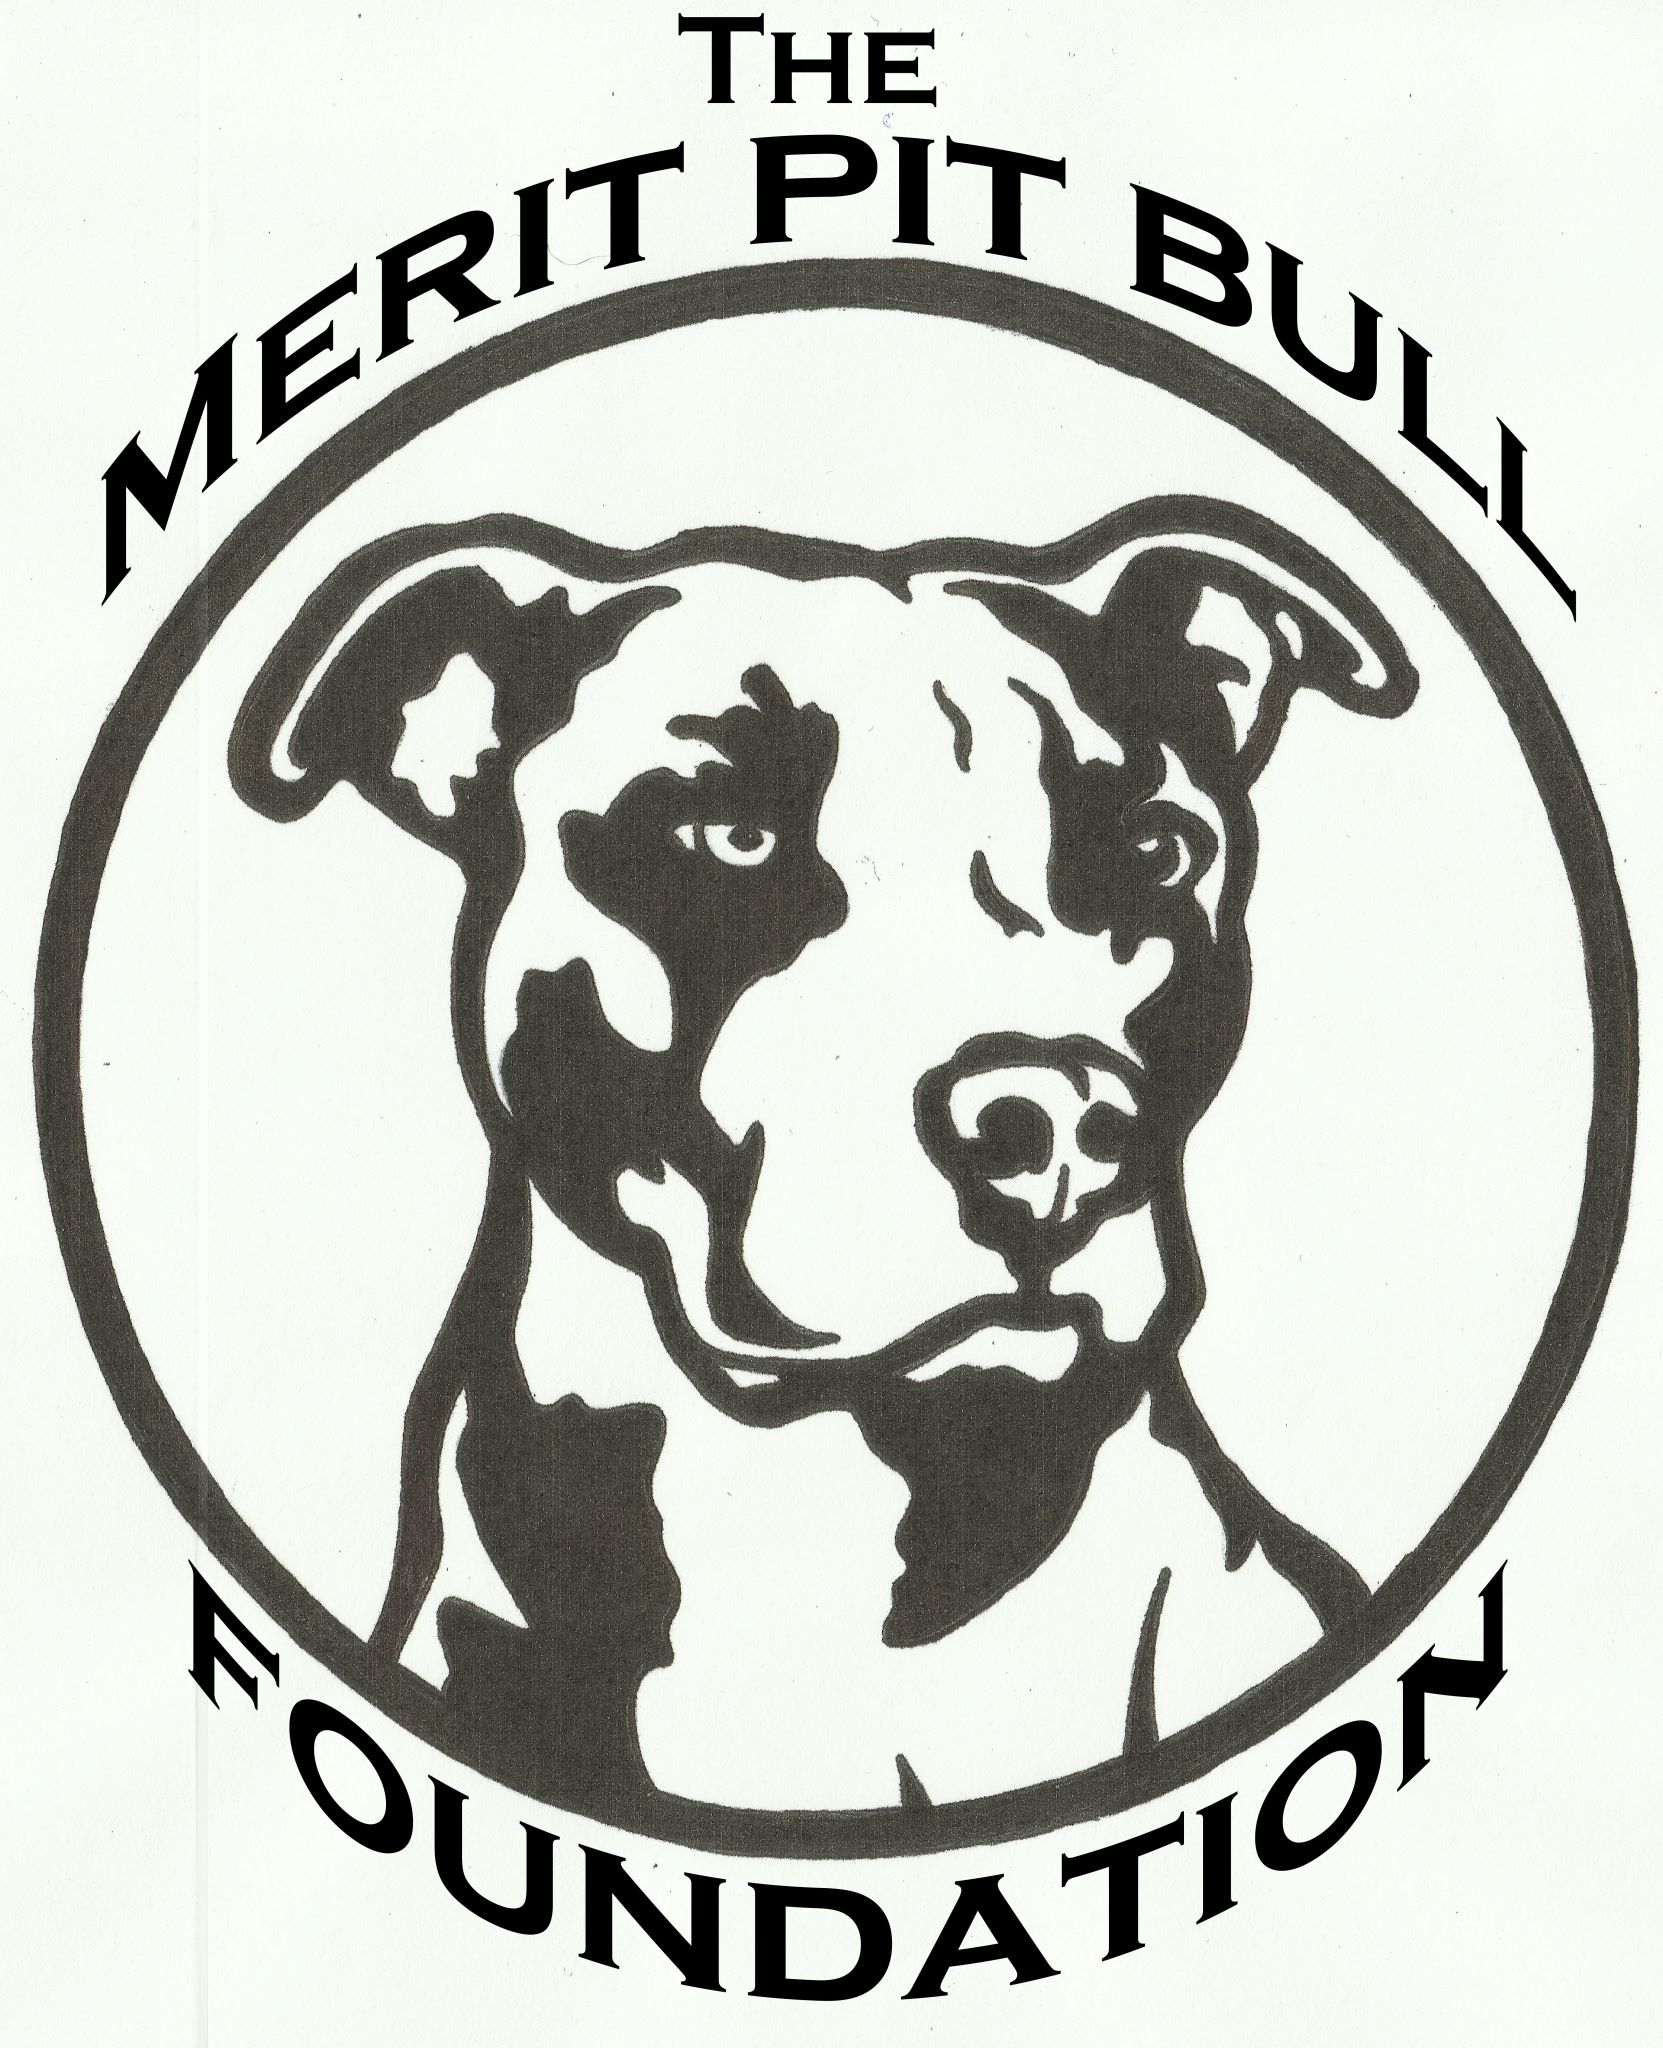 Pets For Adoption At The Merit Pit Bull Foundation In